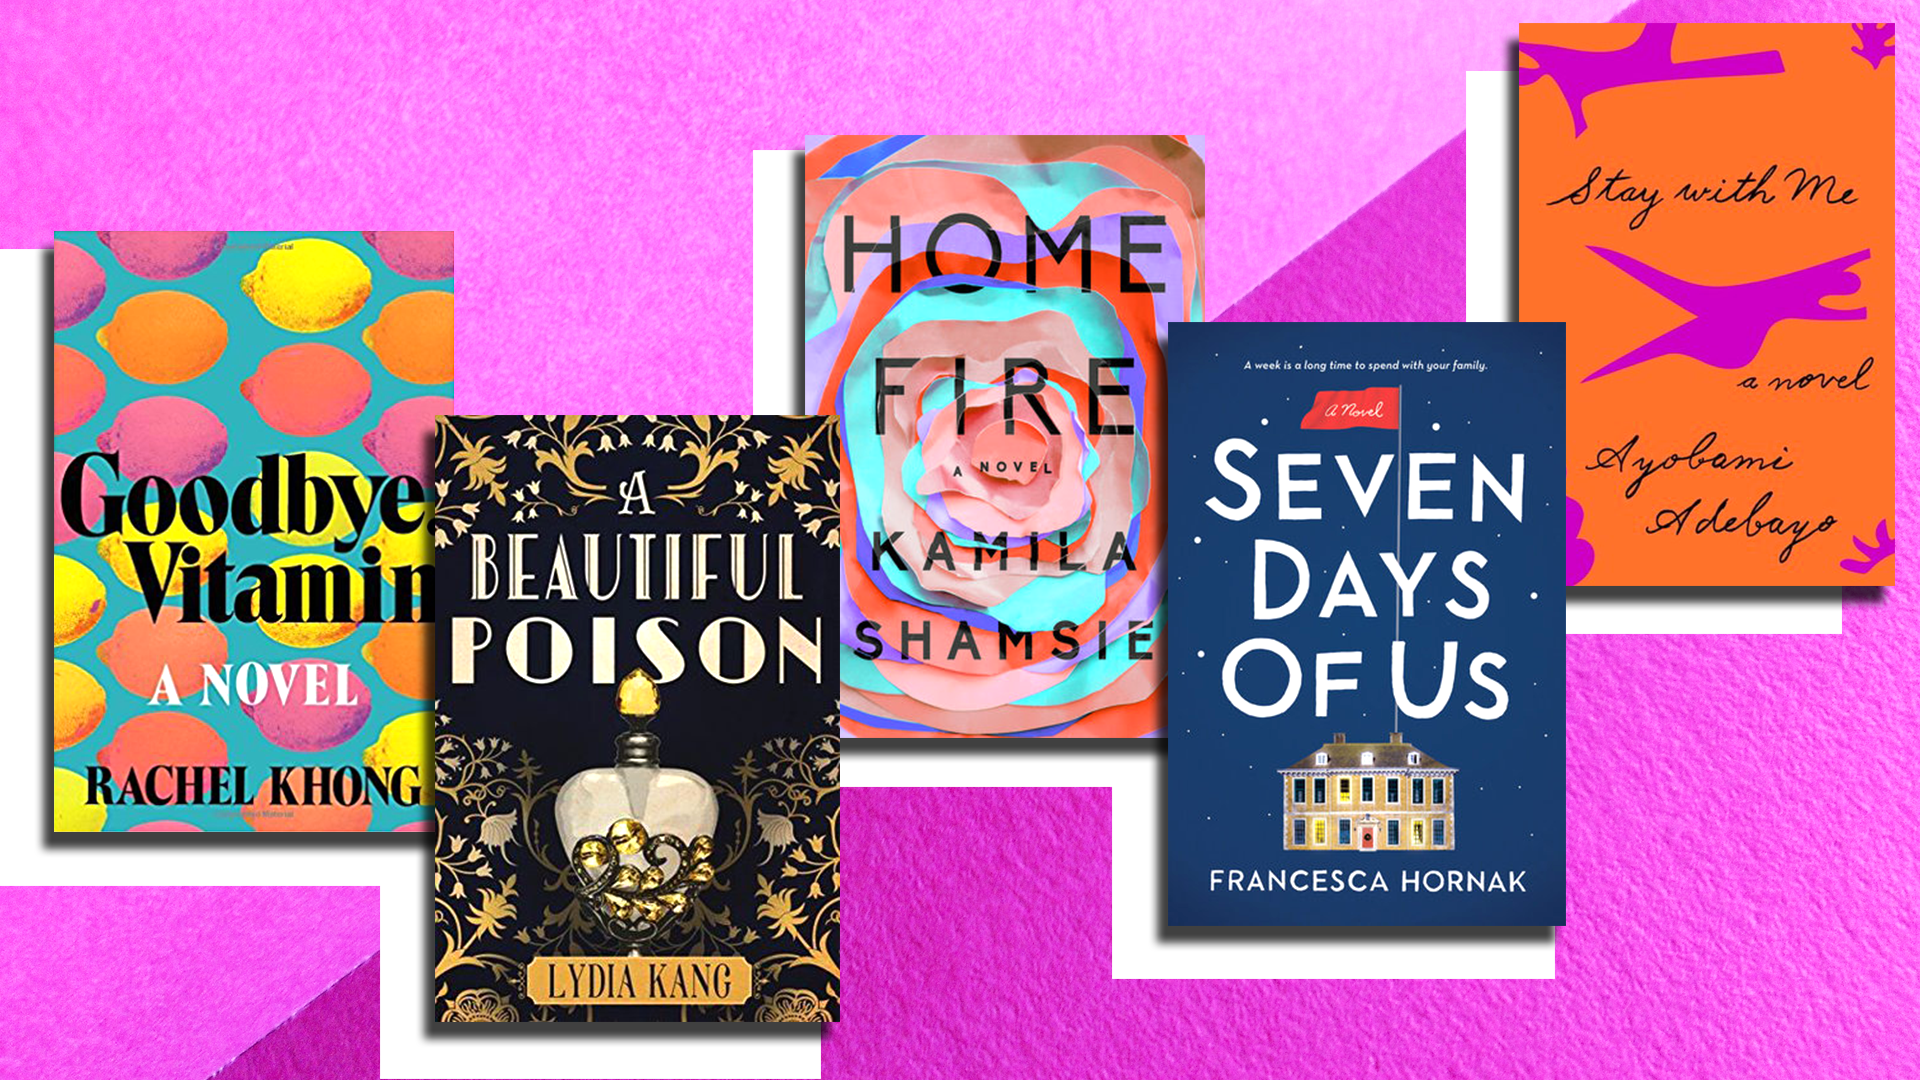 15 Books for Cozy Winter Reading | StyleCaster